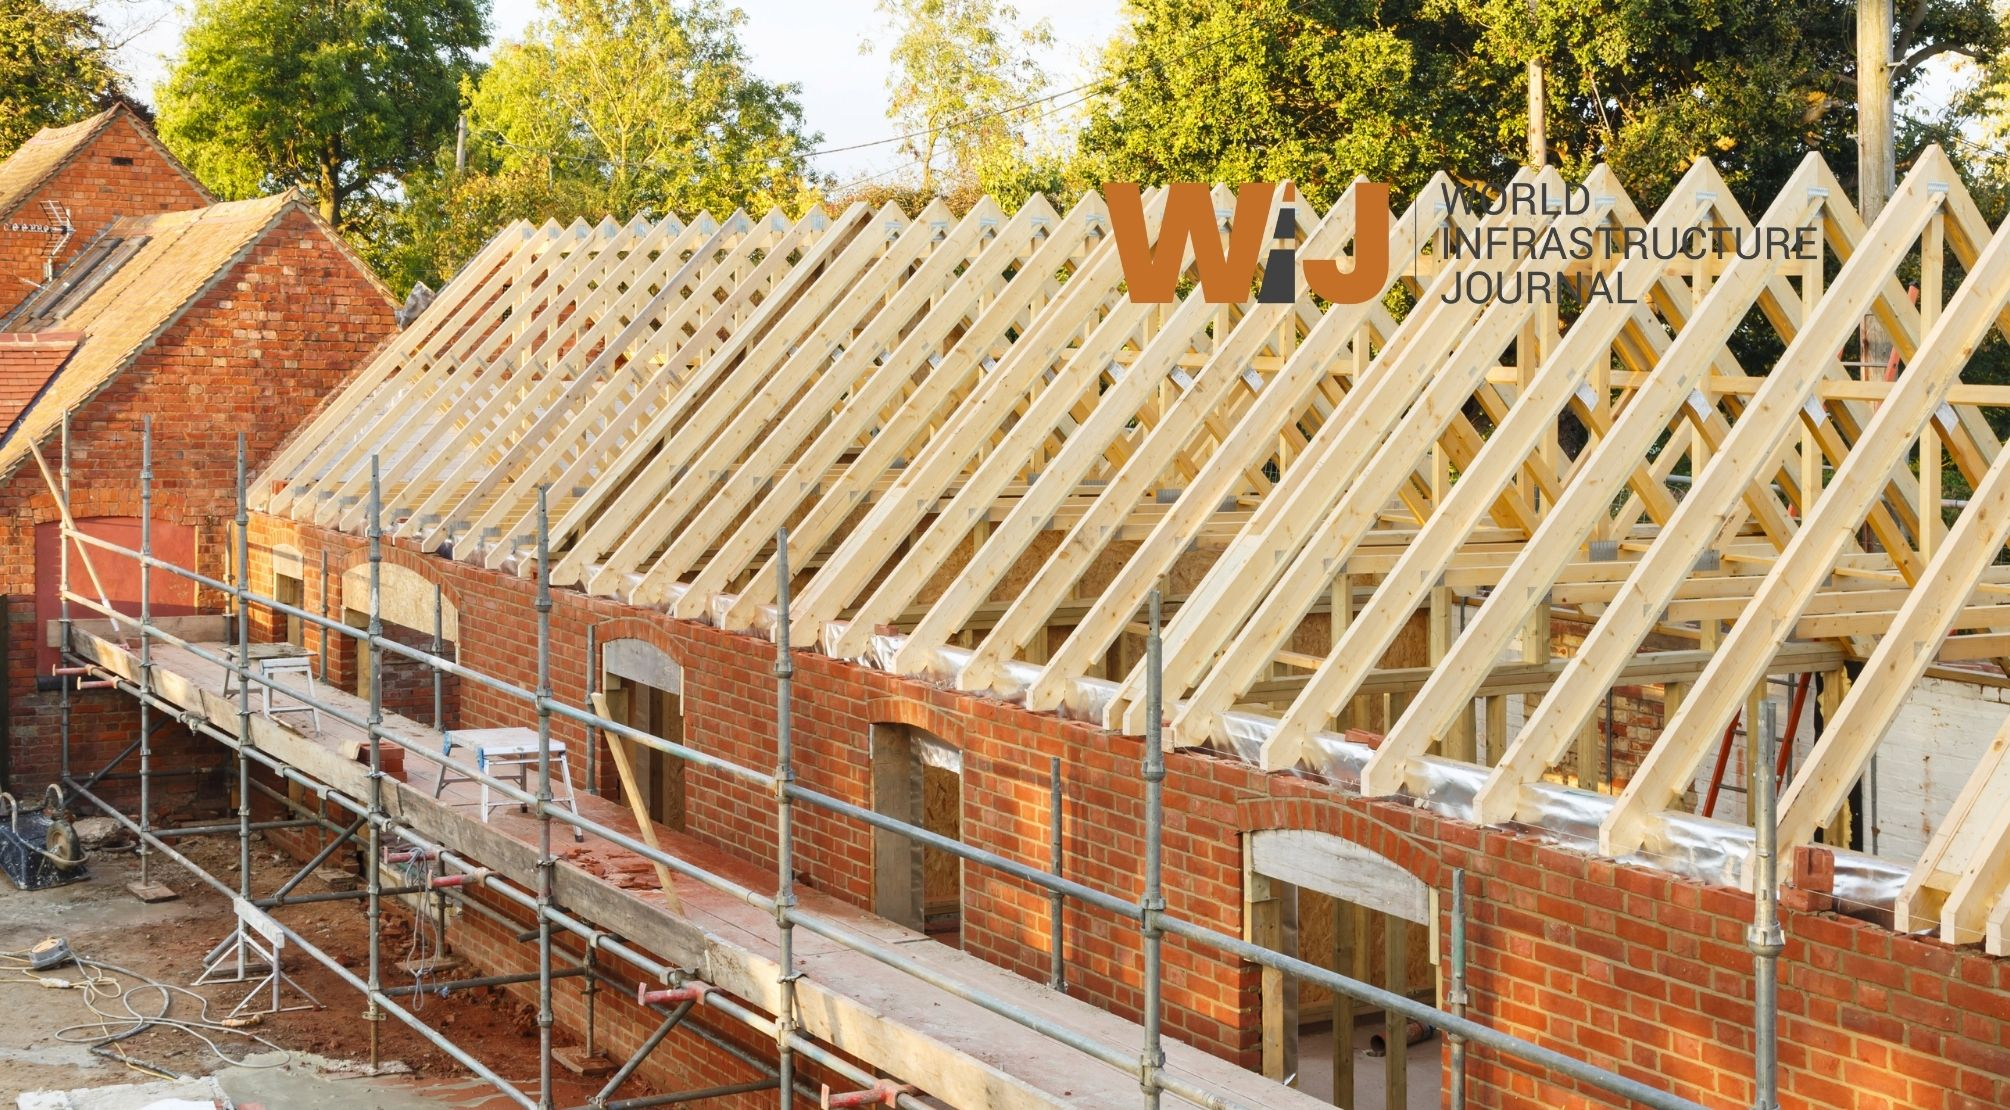 £8.6 billion allocated for affordable housing across England